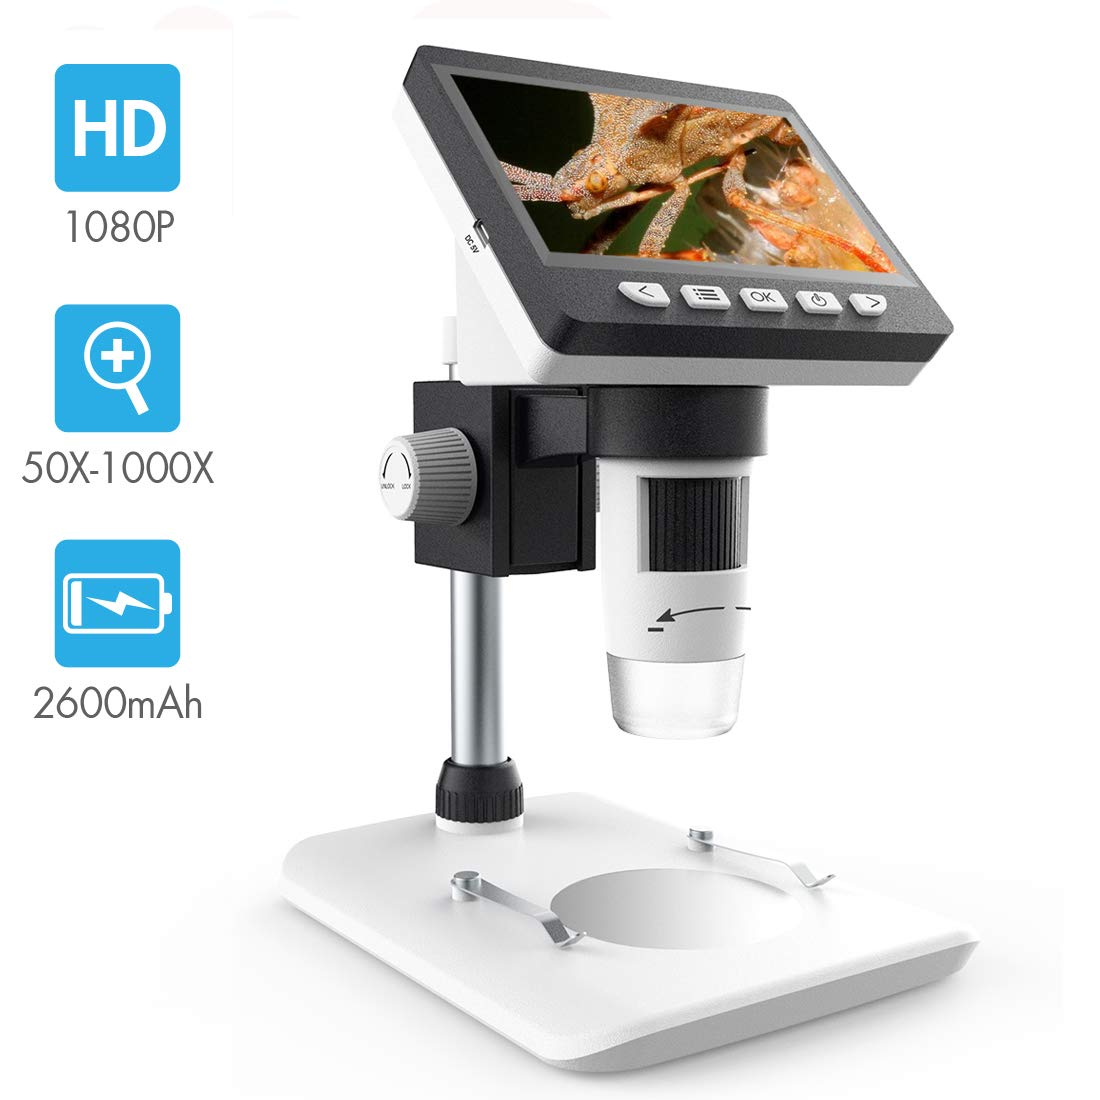 LCD Digital Microscope, SKYBASIC 4.3 inch 50X-1000X Magnification Zoom HD 1080P 2 Megapixels Compound Microscope 8 LED Adjustable LED Light Video Microscope by SKYBASIC (Image #1)